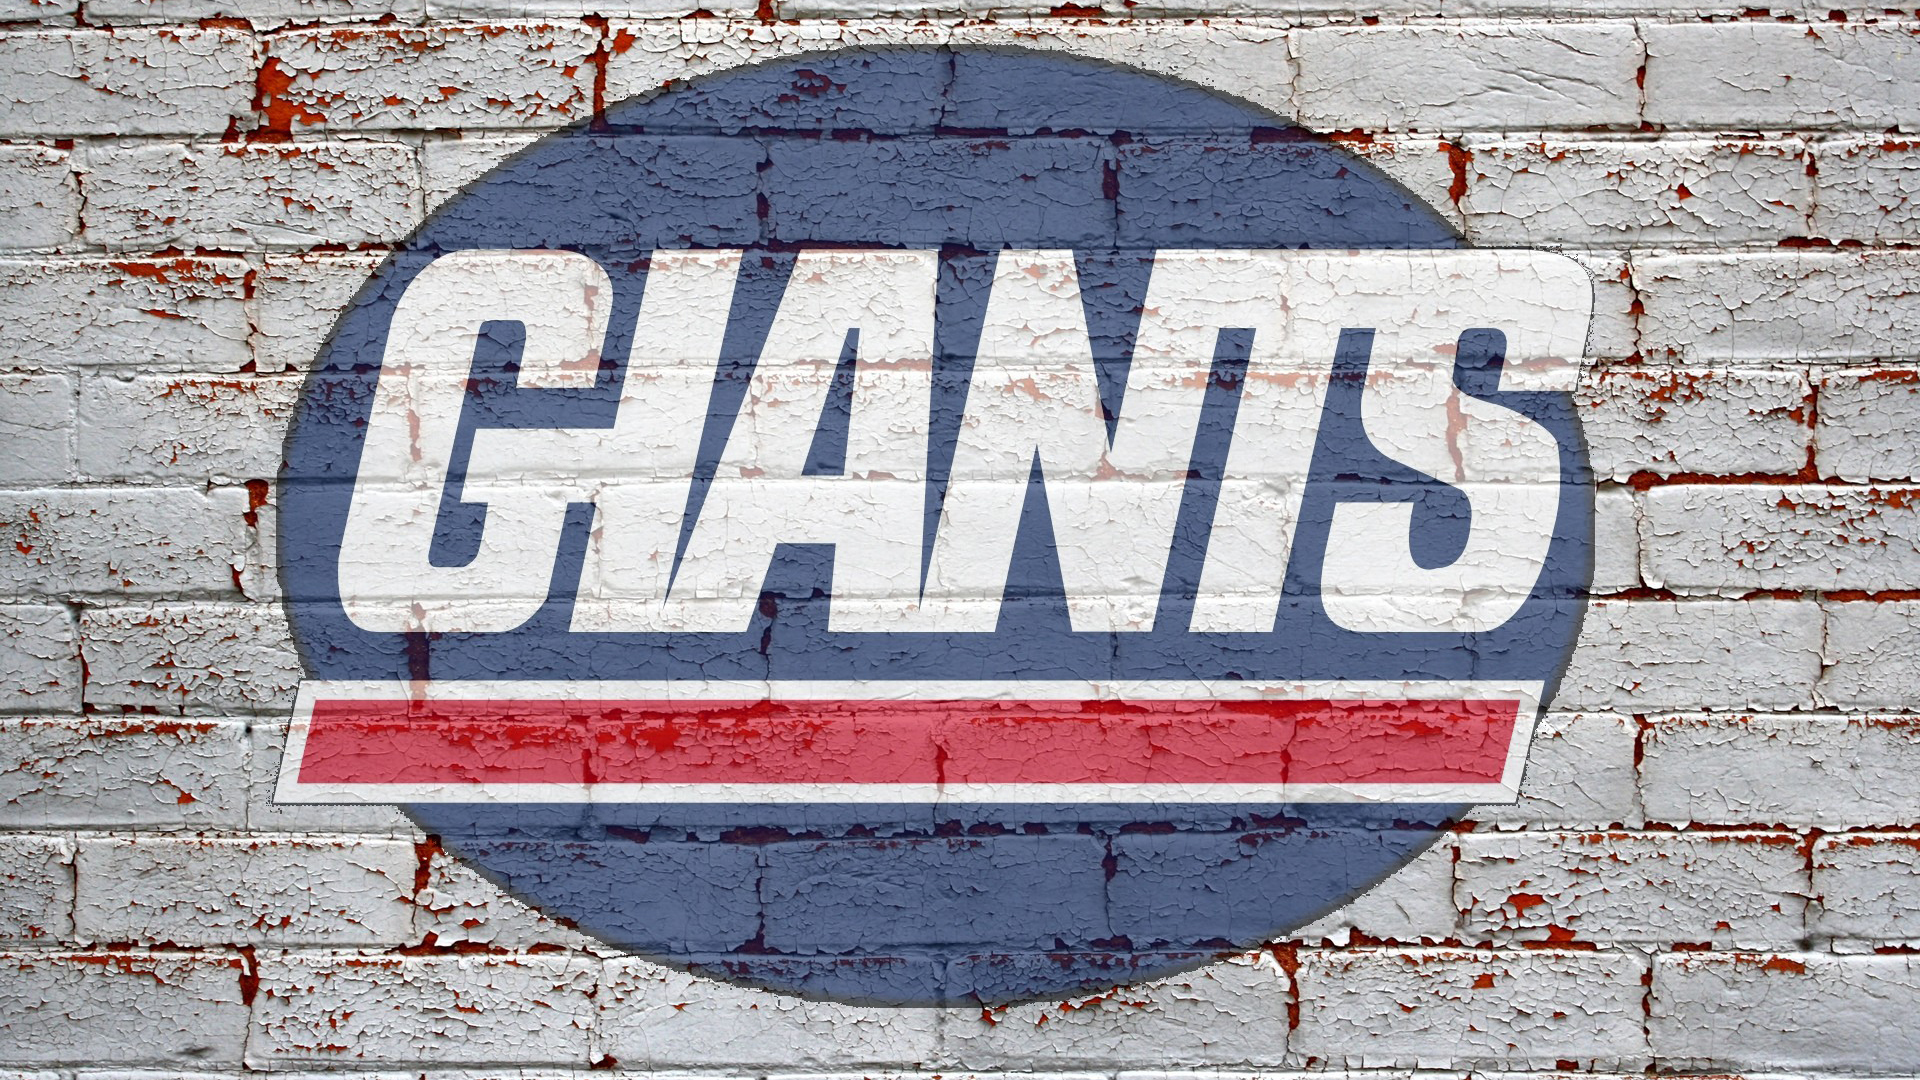 New York Giants High Definition Wallpapers